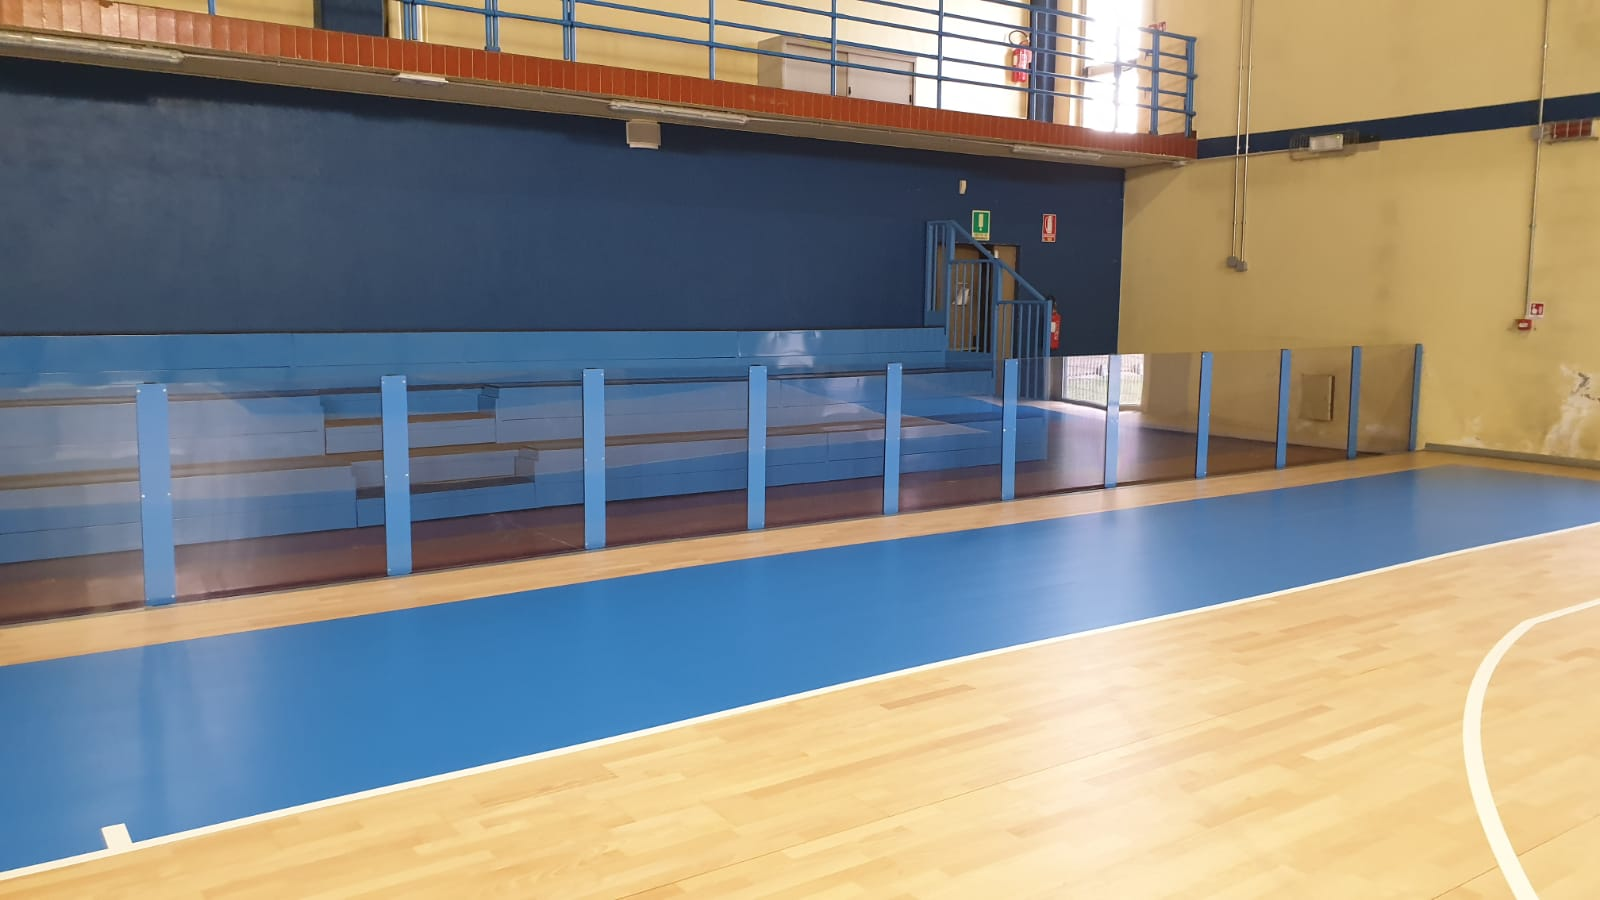 Completely renewed the sports facility for the students of the University of Turin